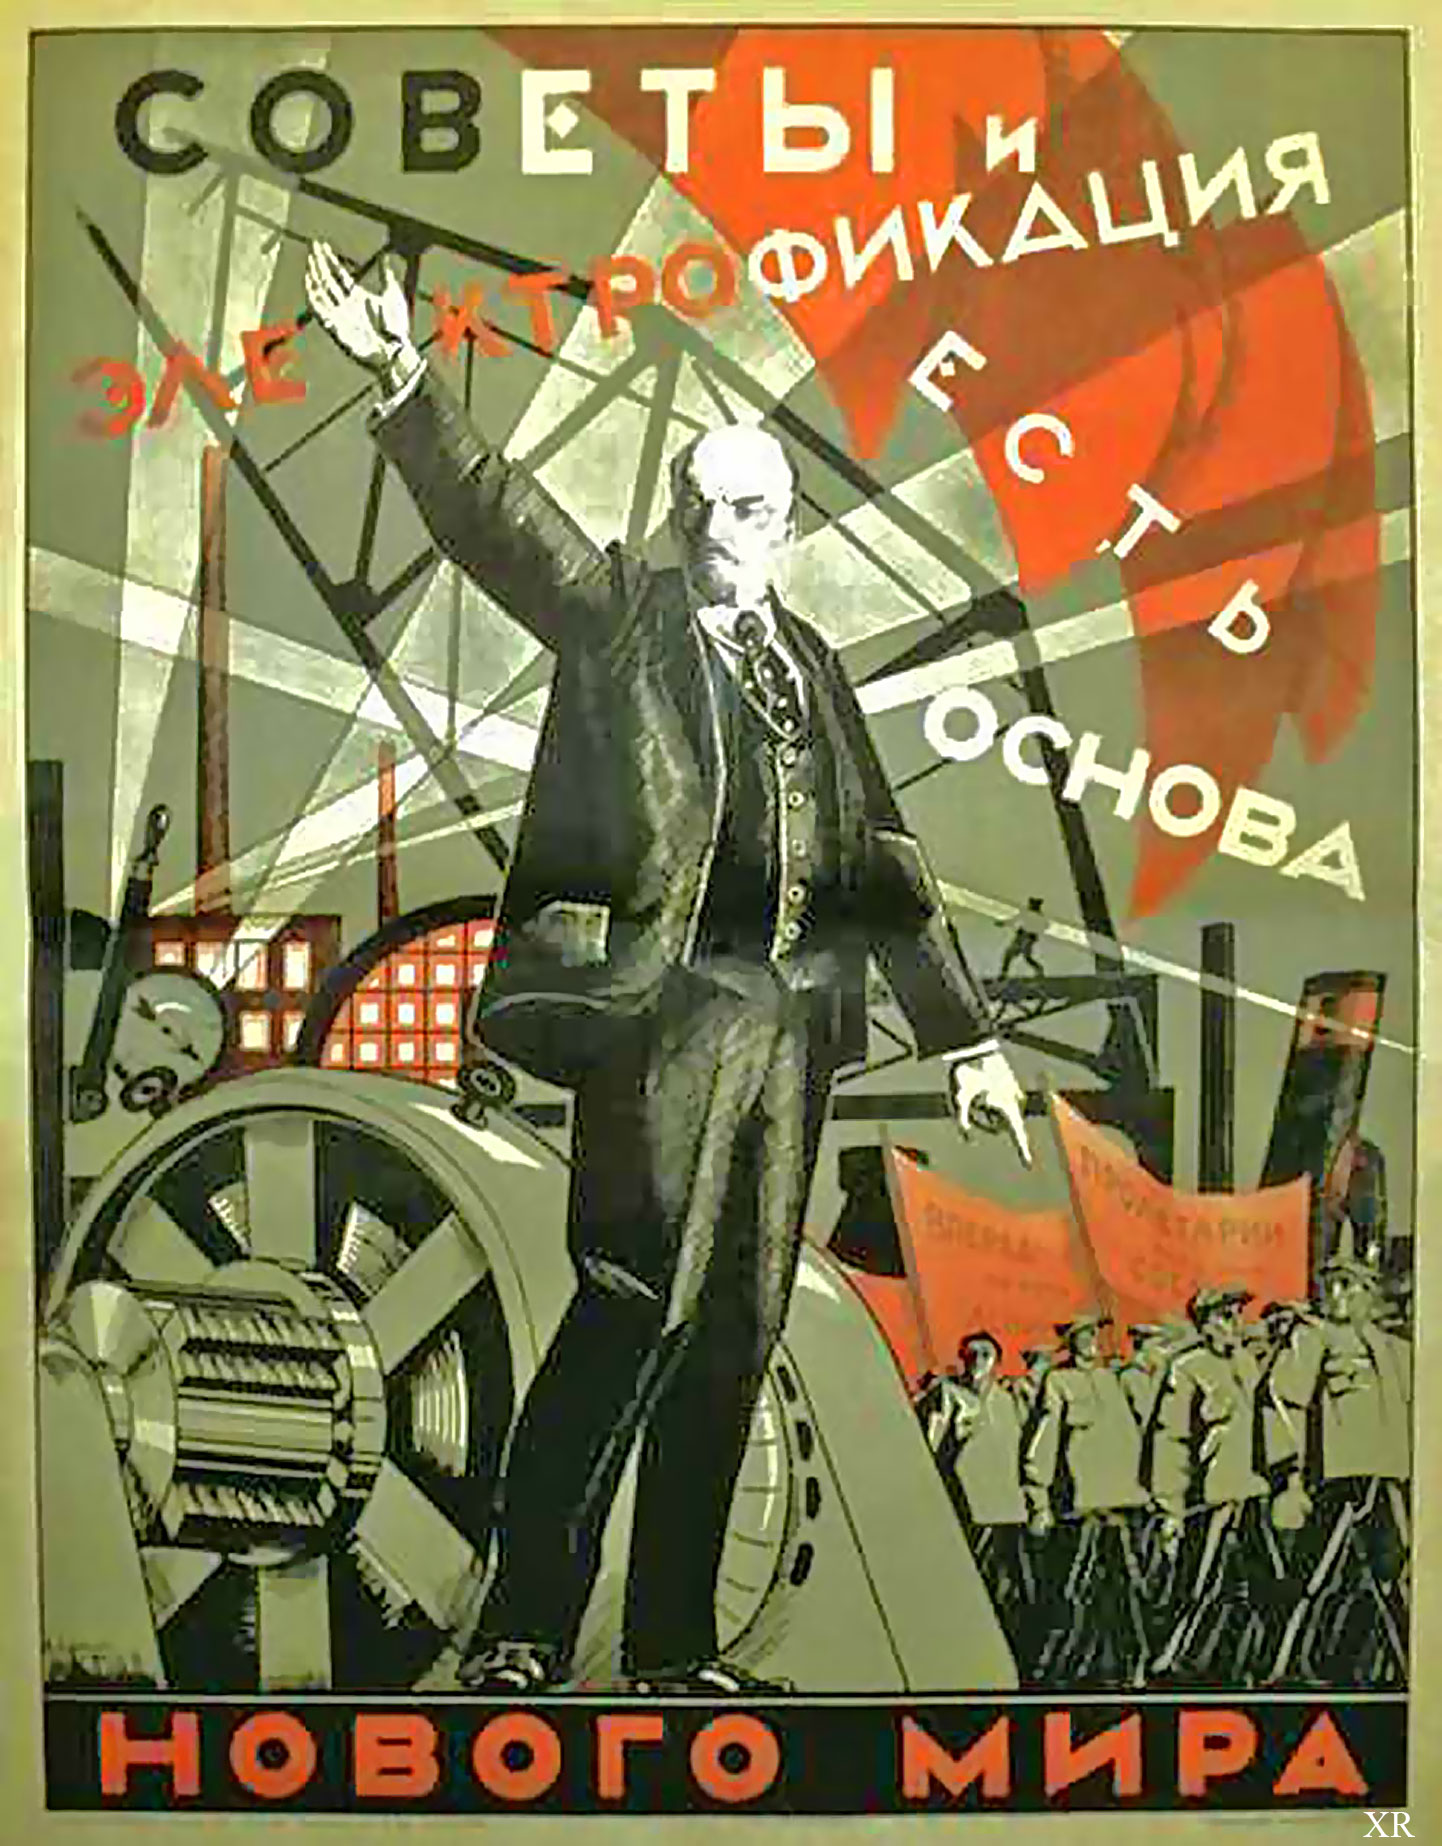 Soviets and electrification are the foundations of a new world.jpg